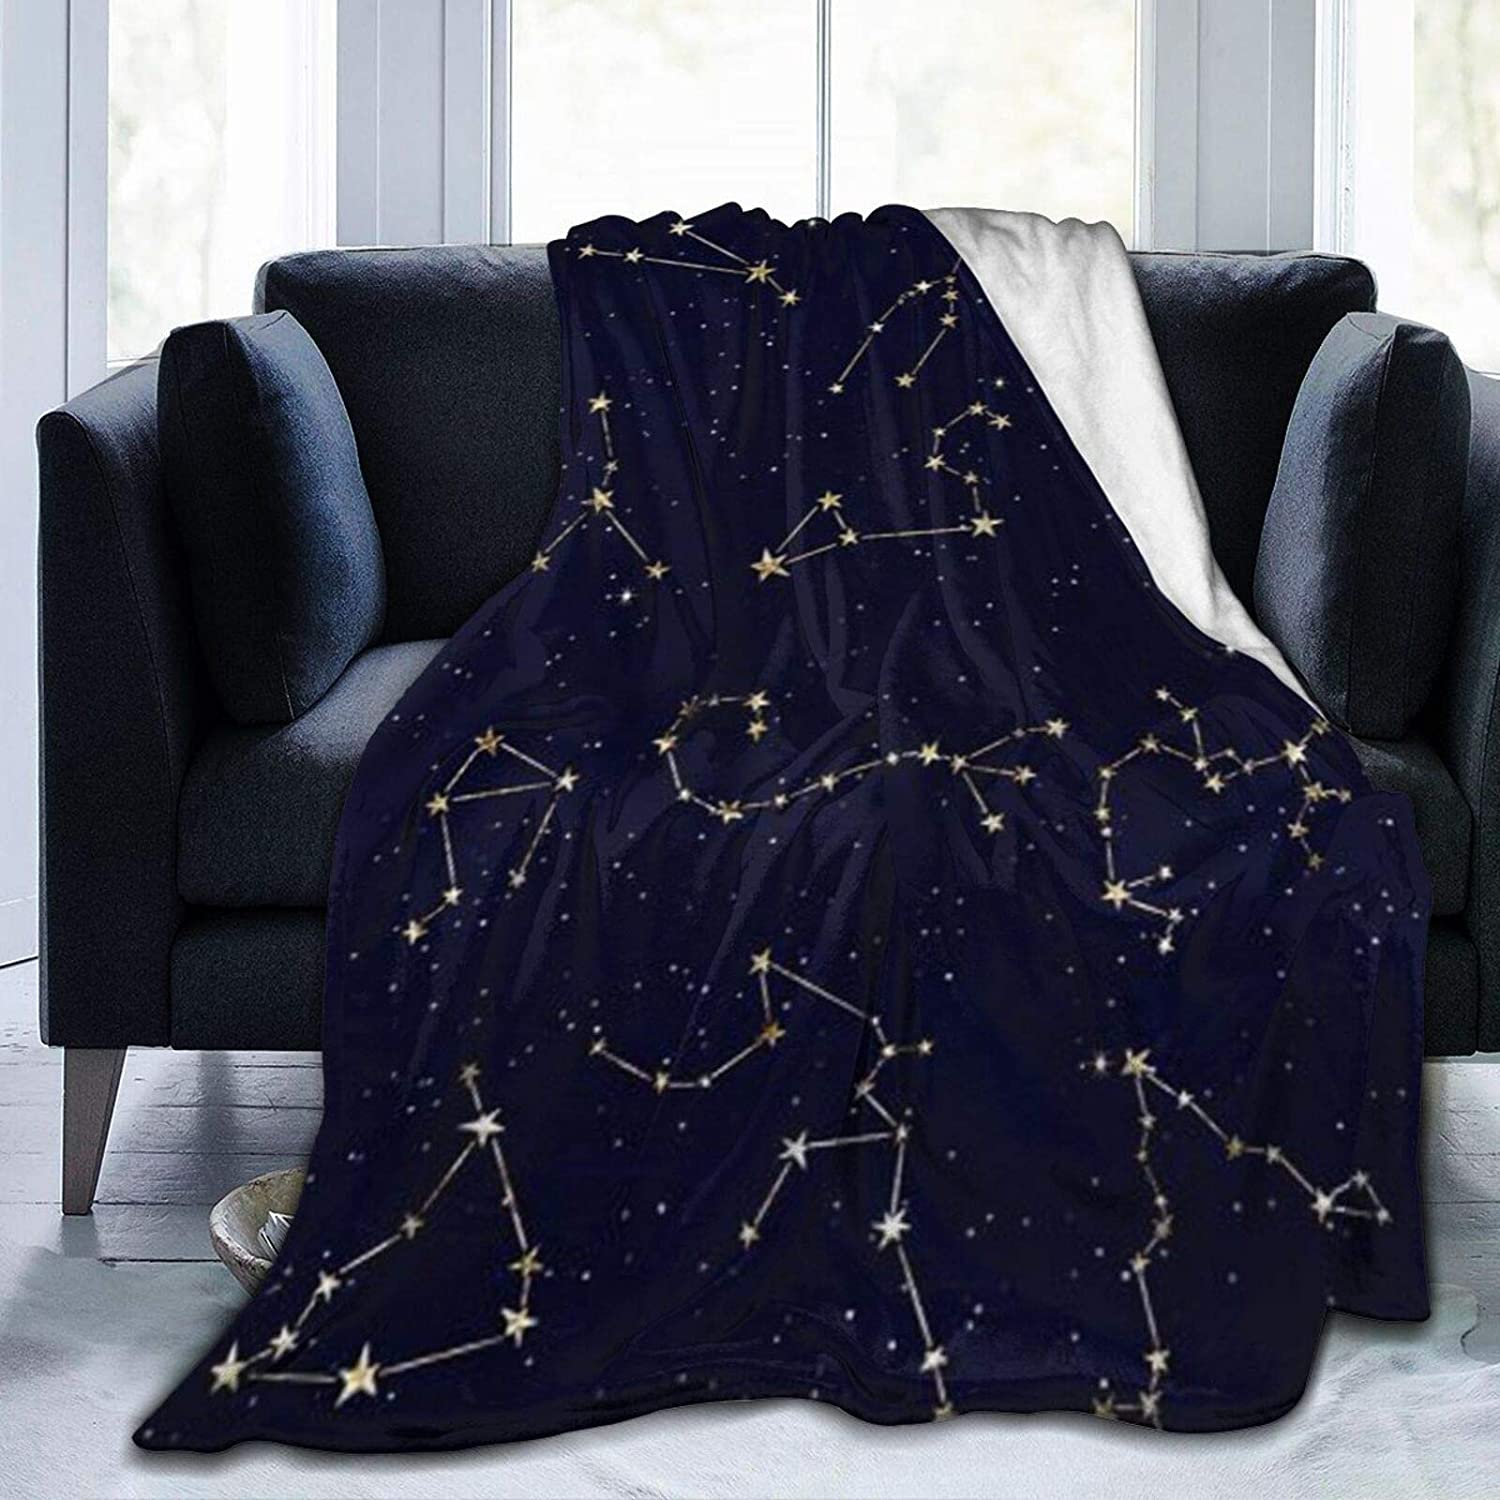 Throw Blanket Fuzzy Sky Star Plush Bl Microfiber Map Limited Over item handling time cheap sale Bed